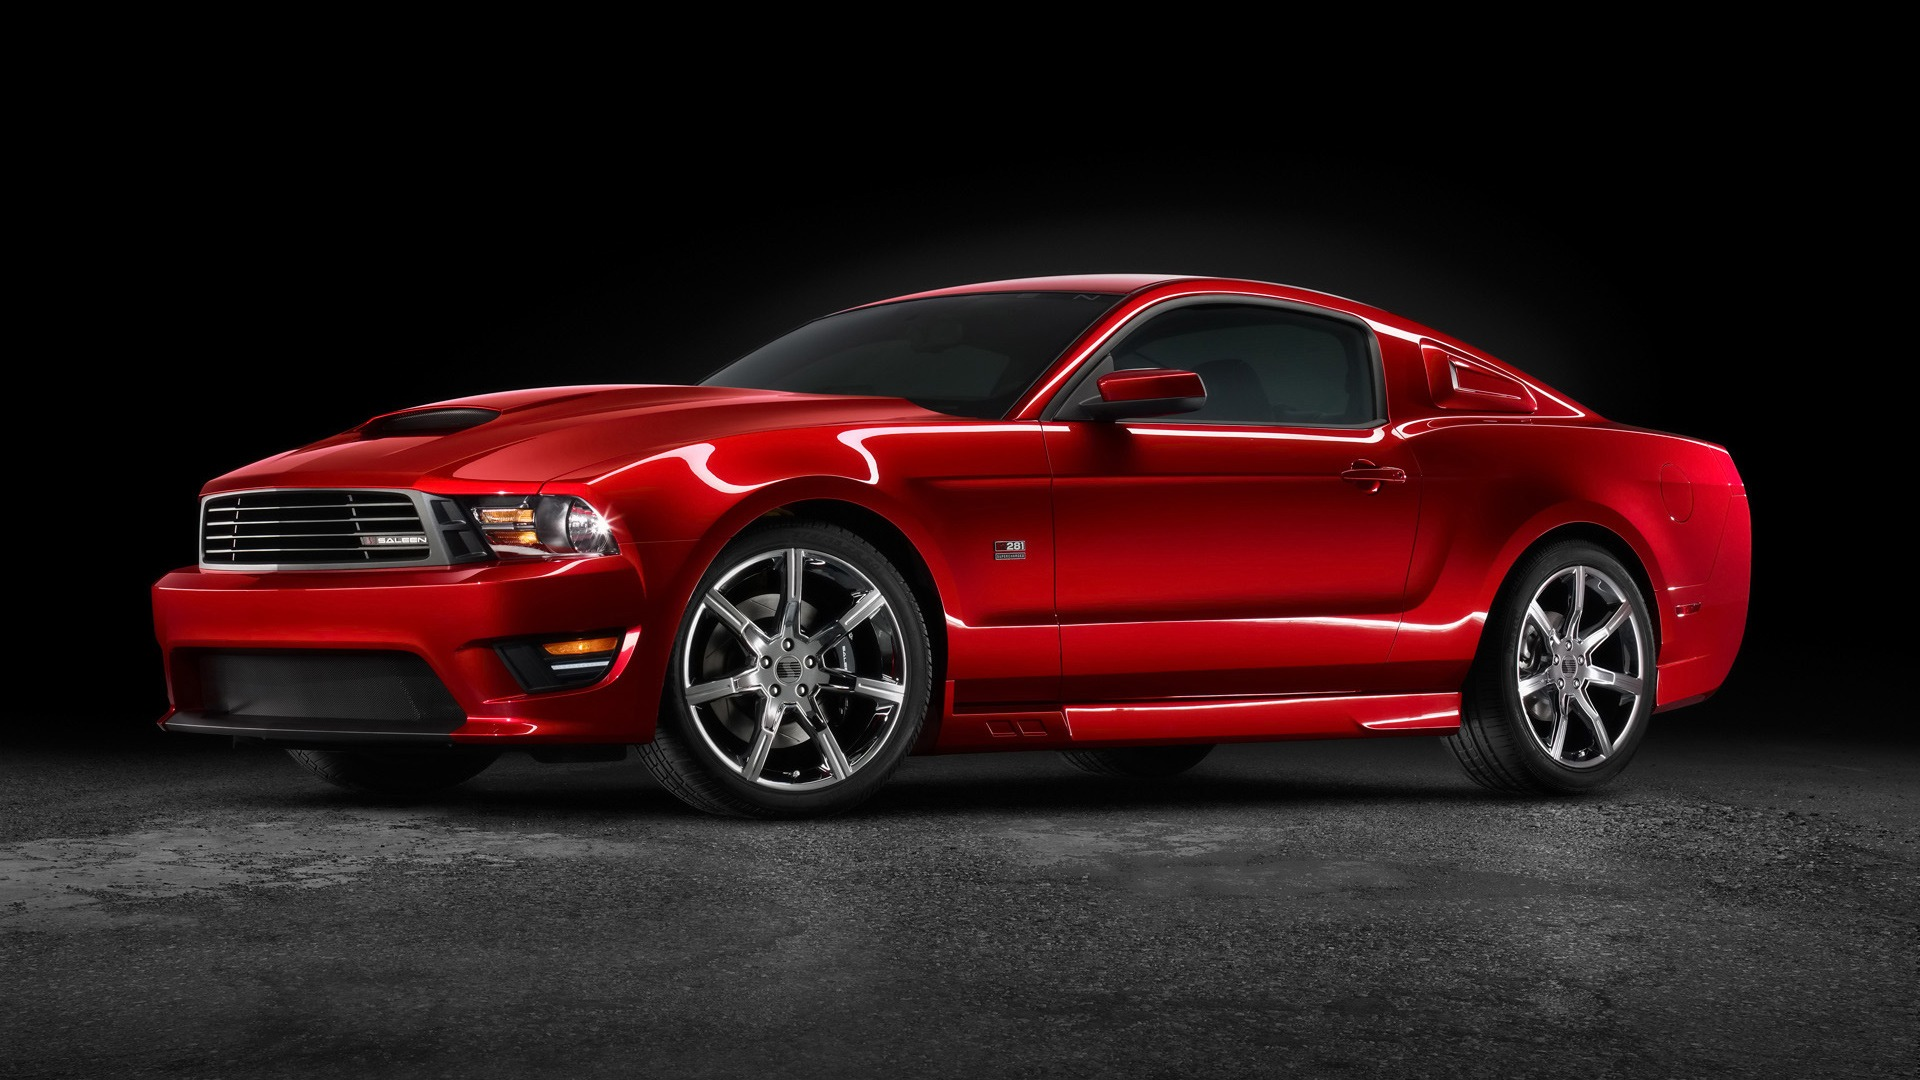 Saleen Ford Mustang Wallpaper Ford Cars Wallpapers In Jpg